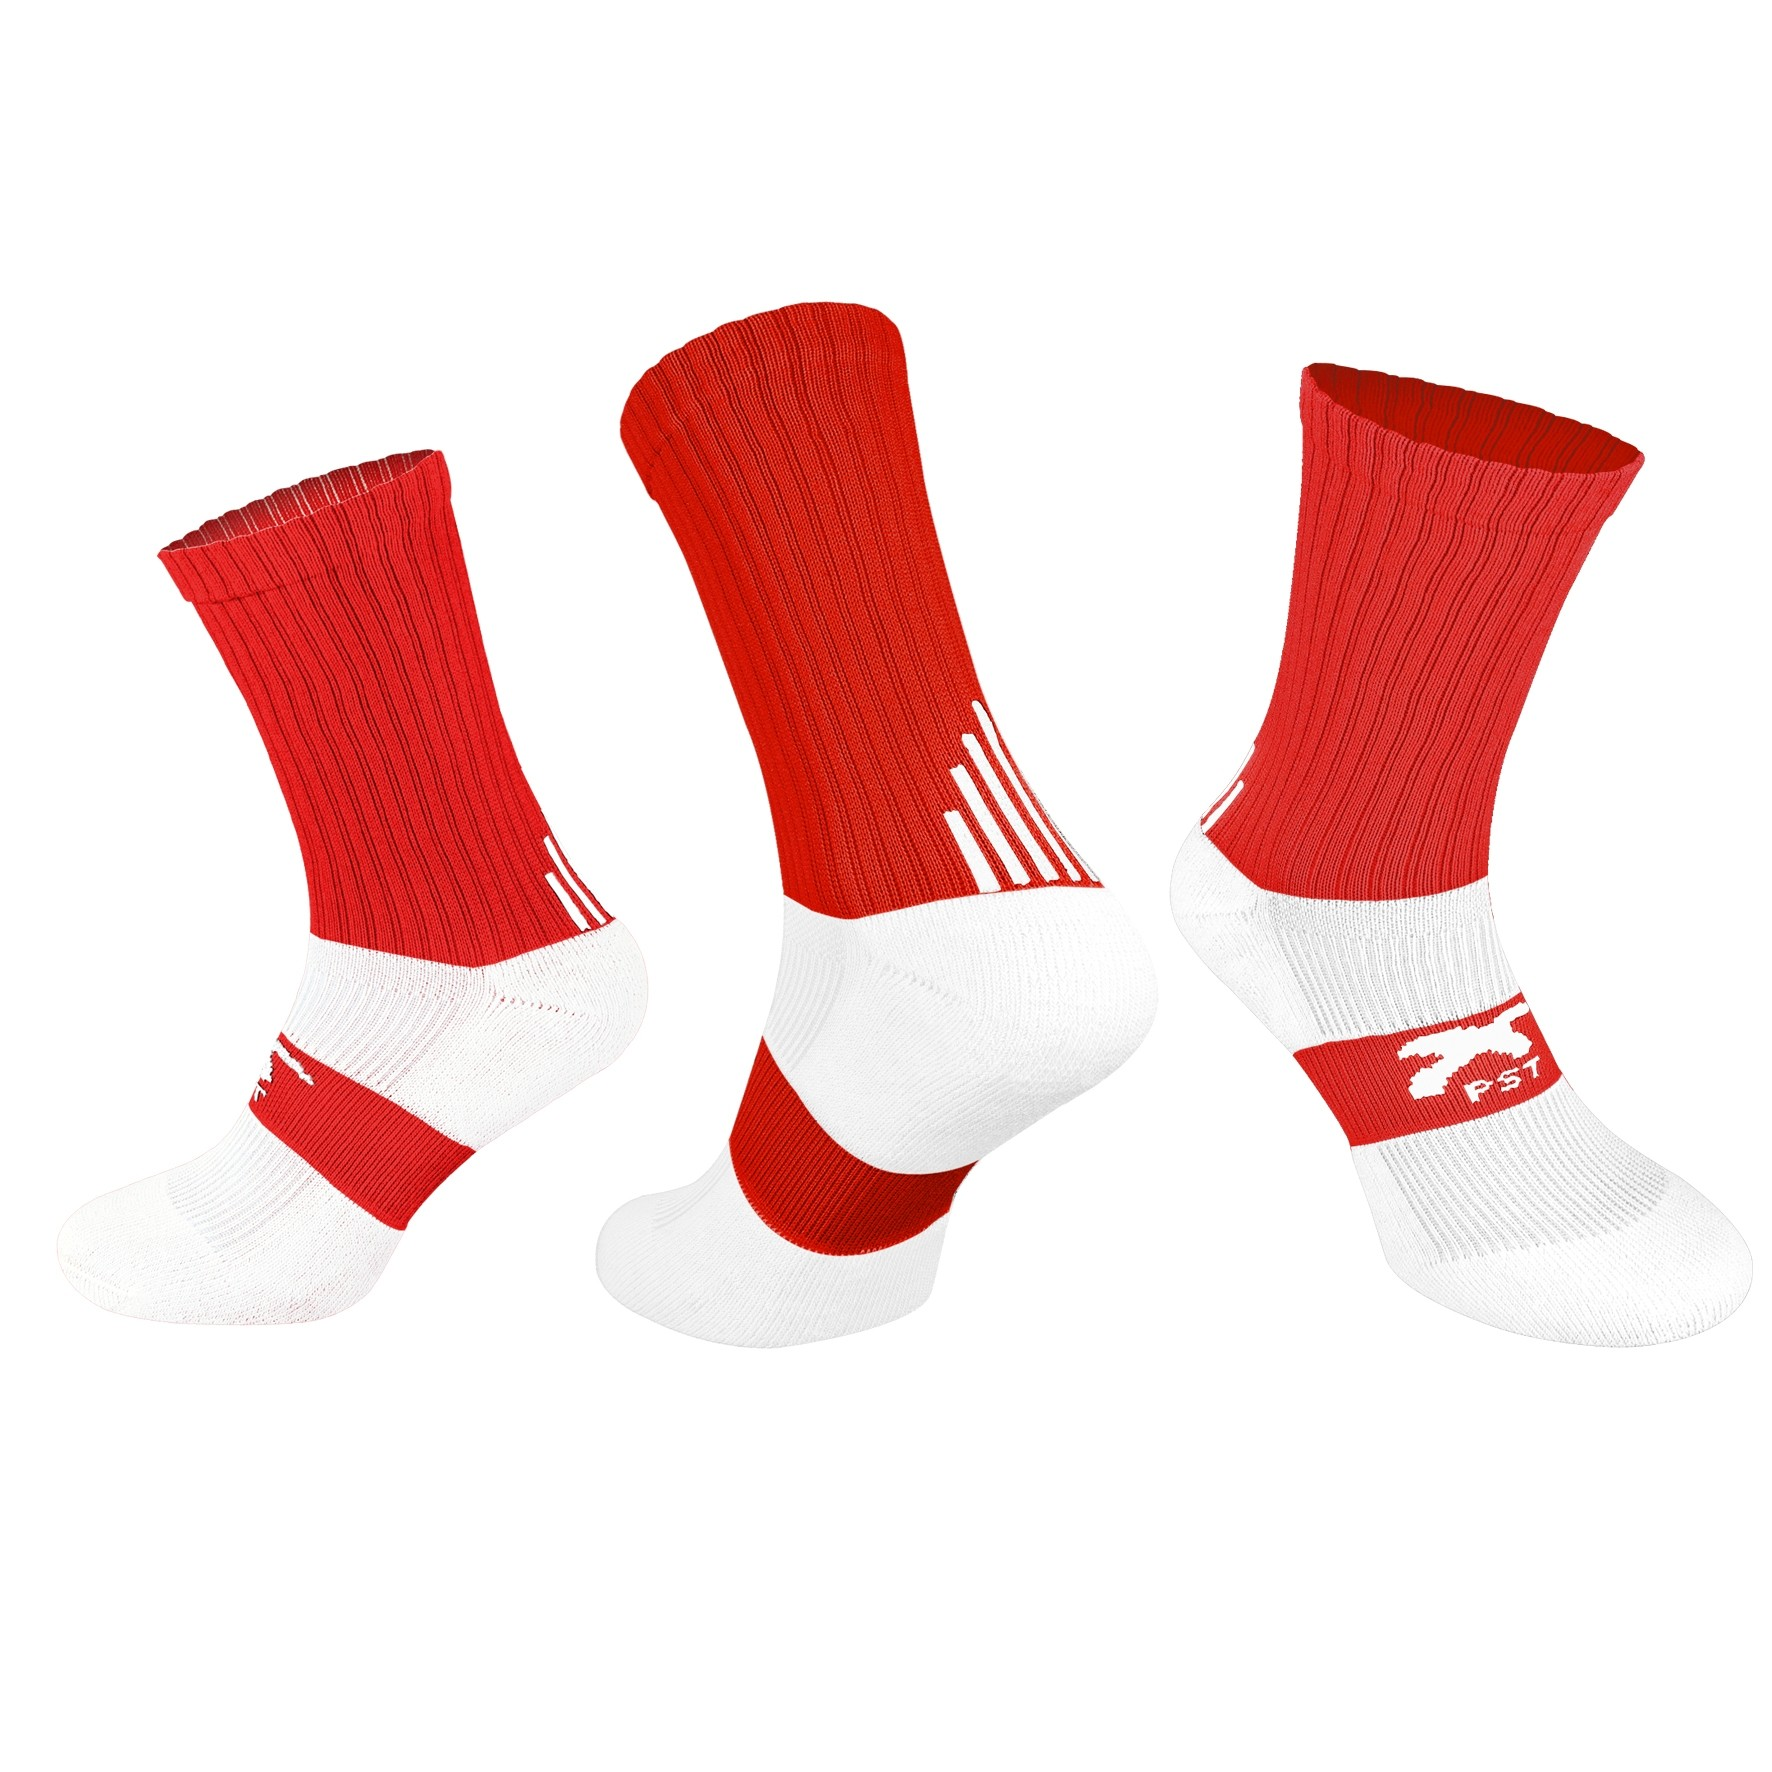 PST Crew Socks - Red